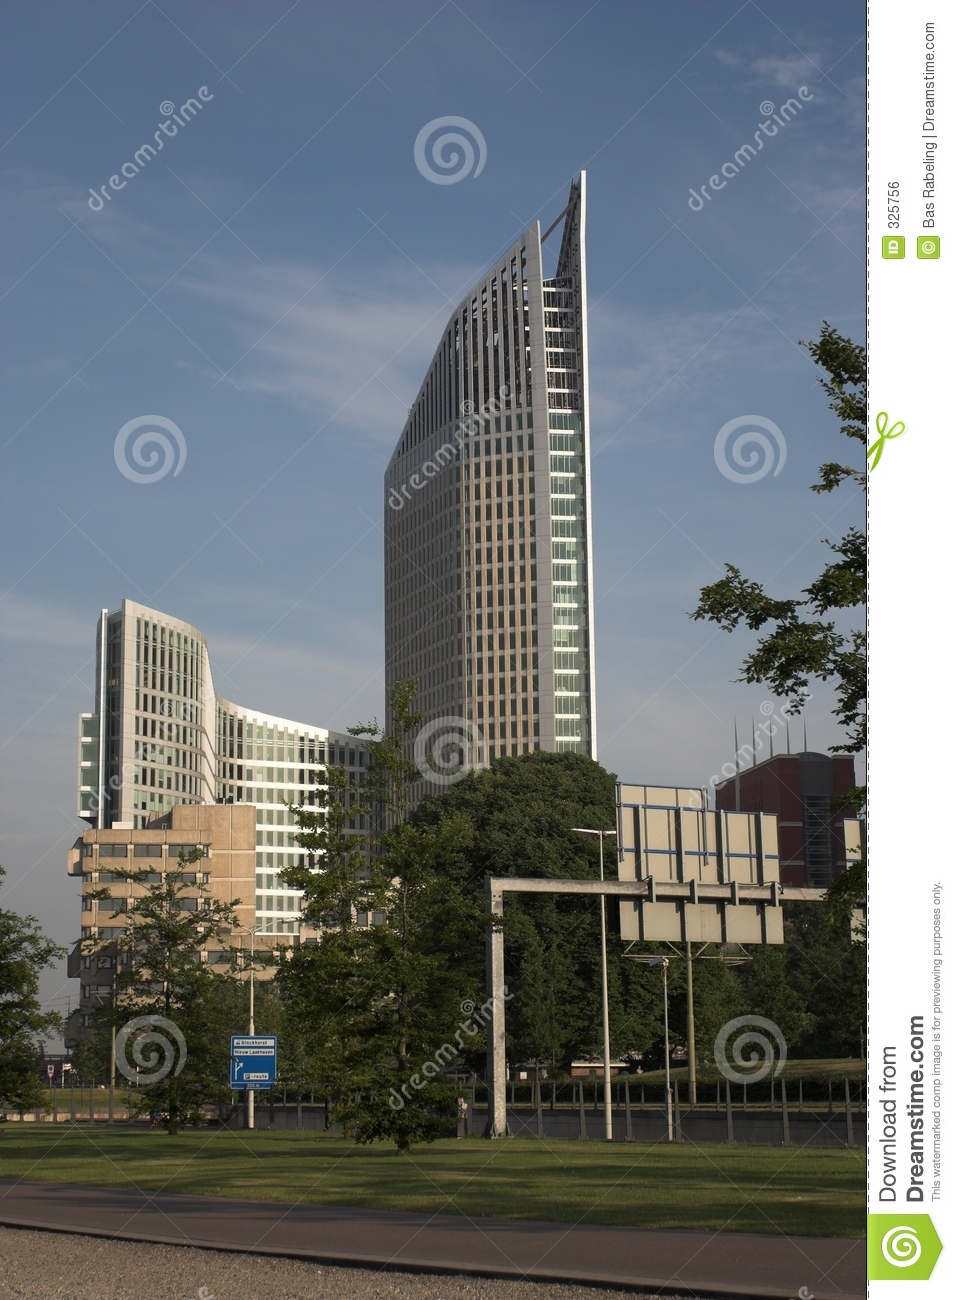 Skyscraper: the Hoftoren in the Hague